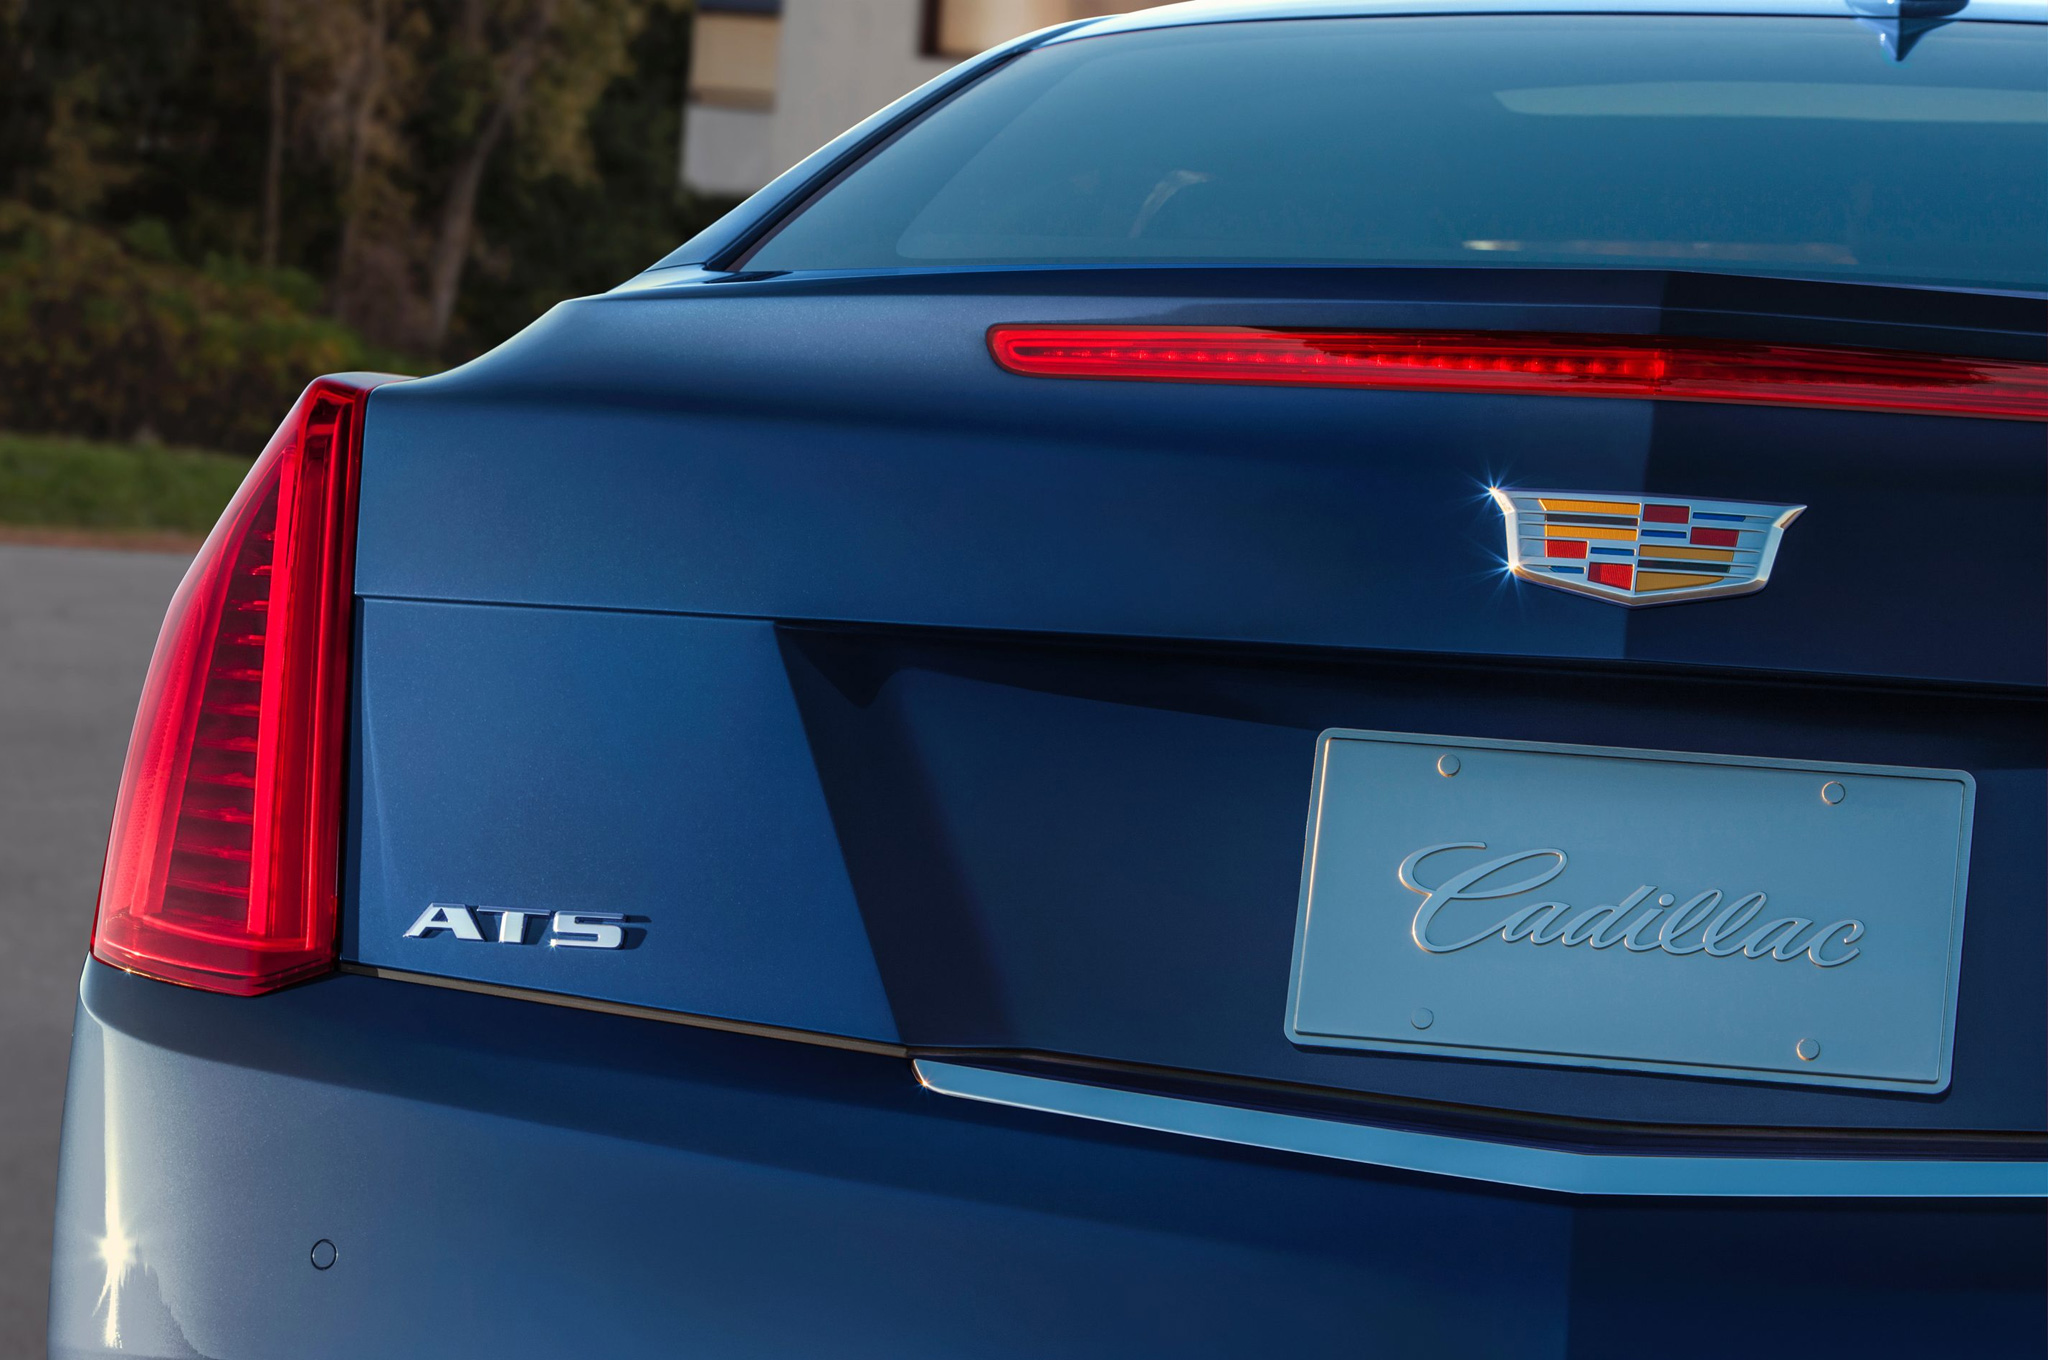 2015 Cadillac Ats Coupe Rear Lamp Close Up (View 3 of 21)